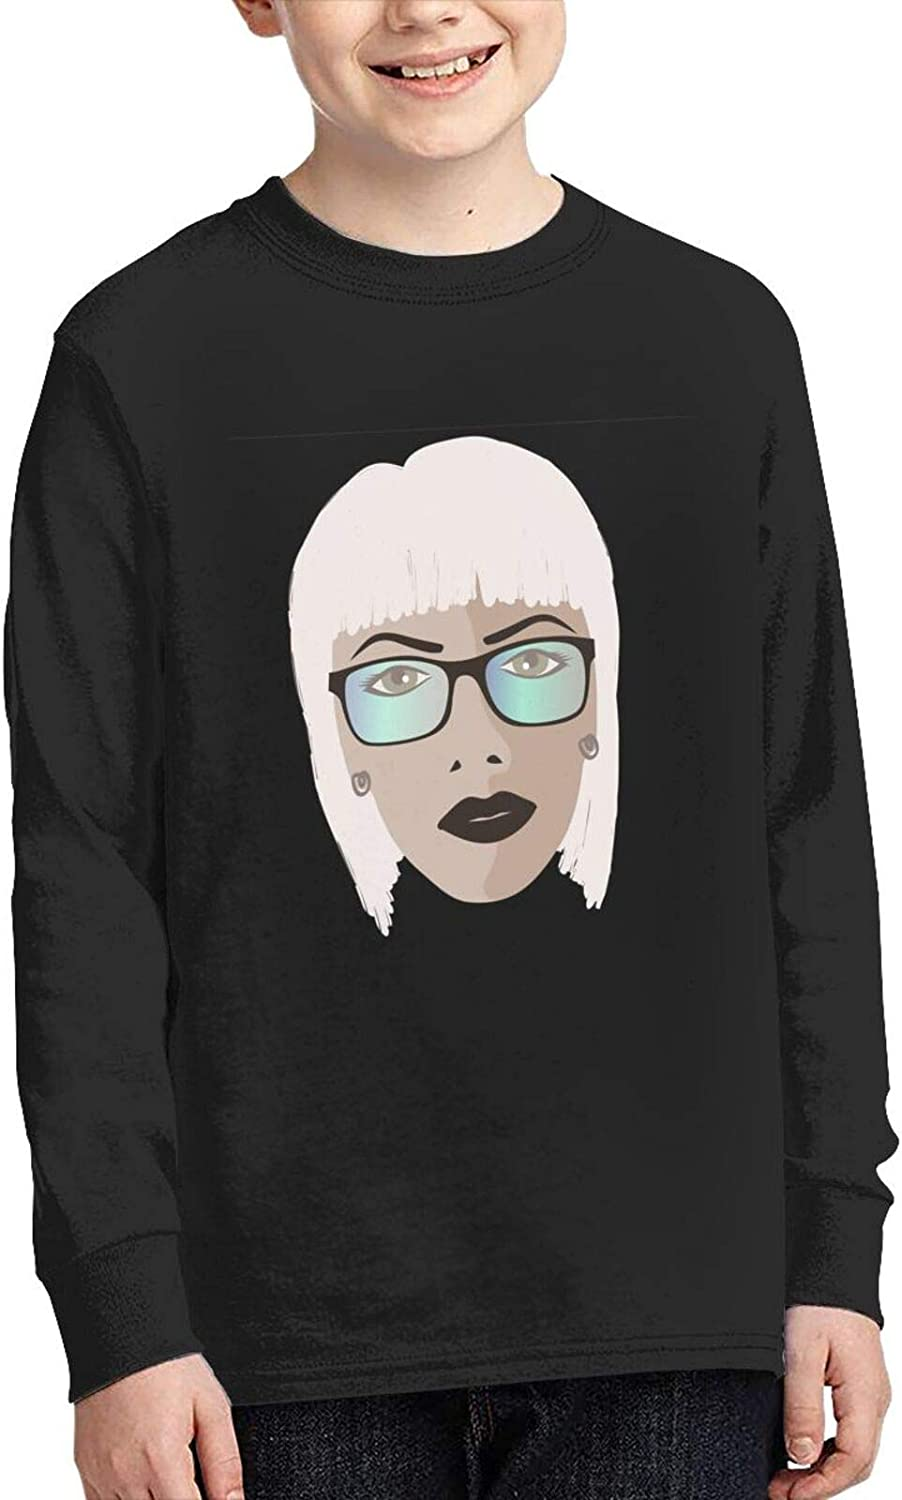 TZT Glamor Girl Wears Sunglasses Sweater Fashion and Comfortable Children's Sweater